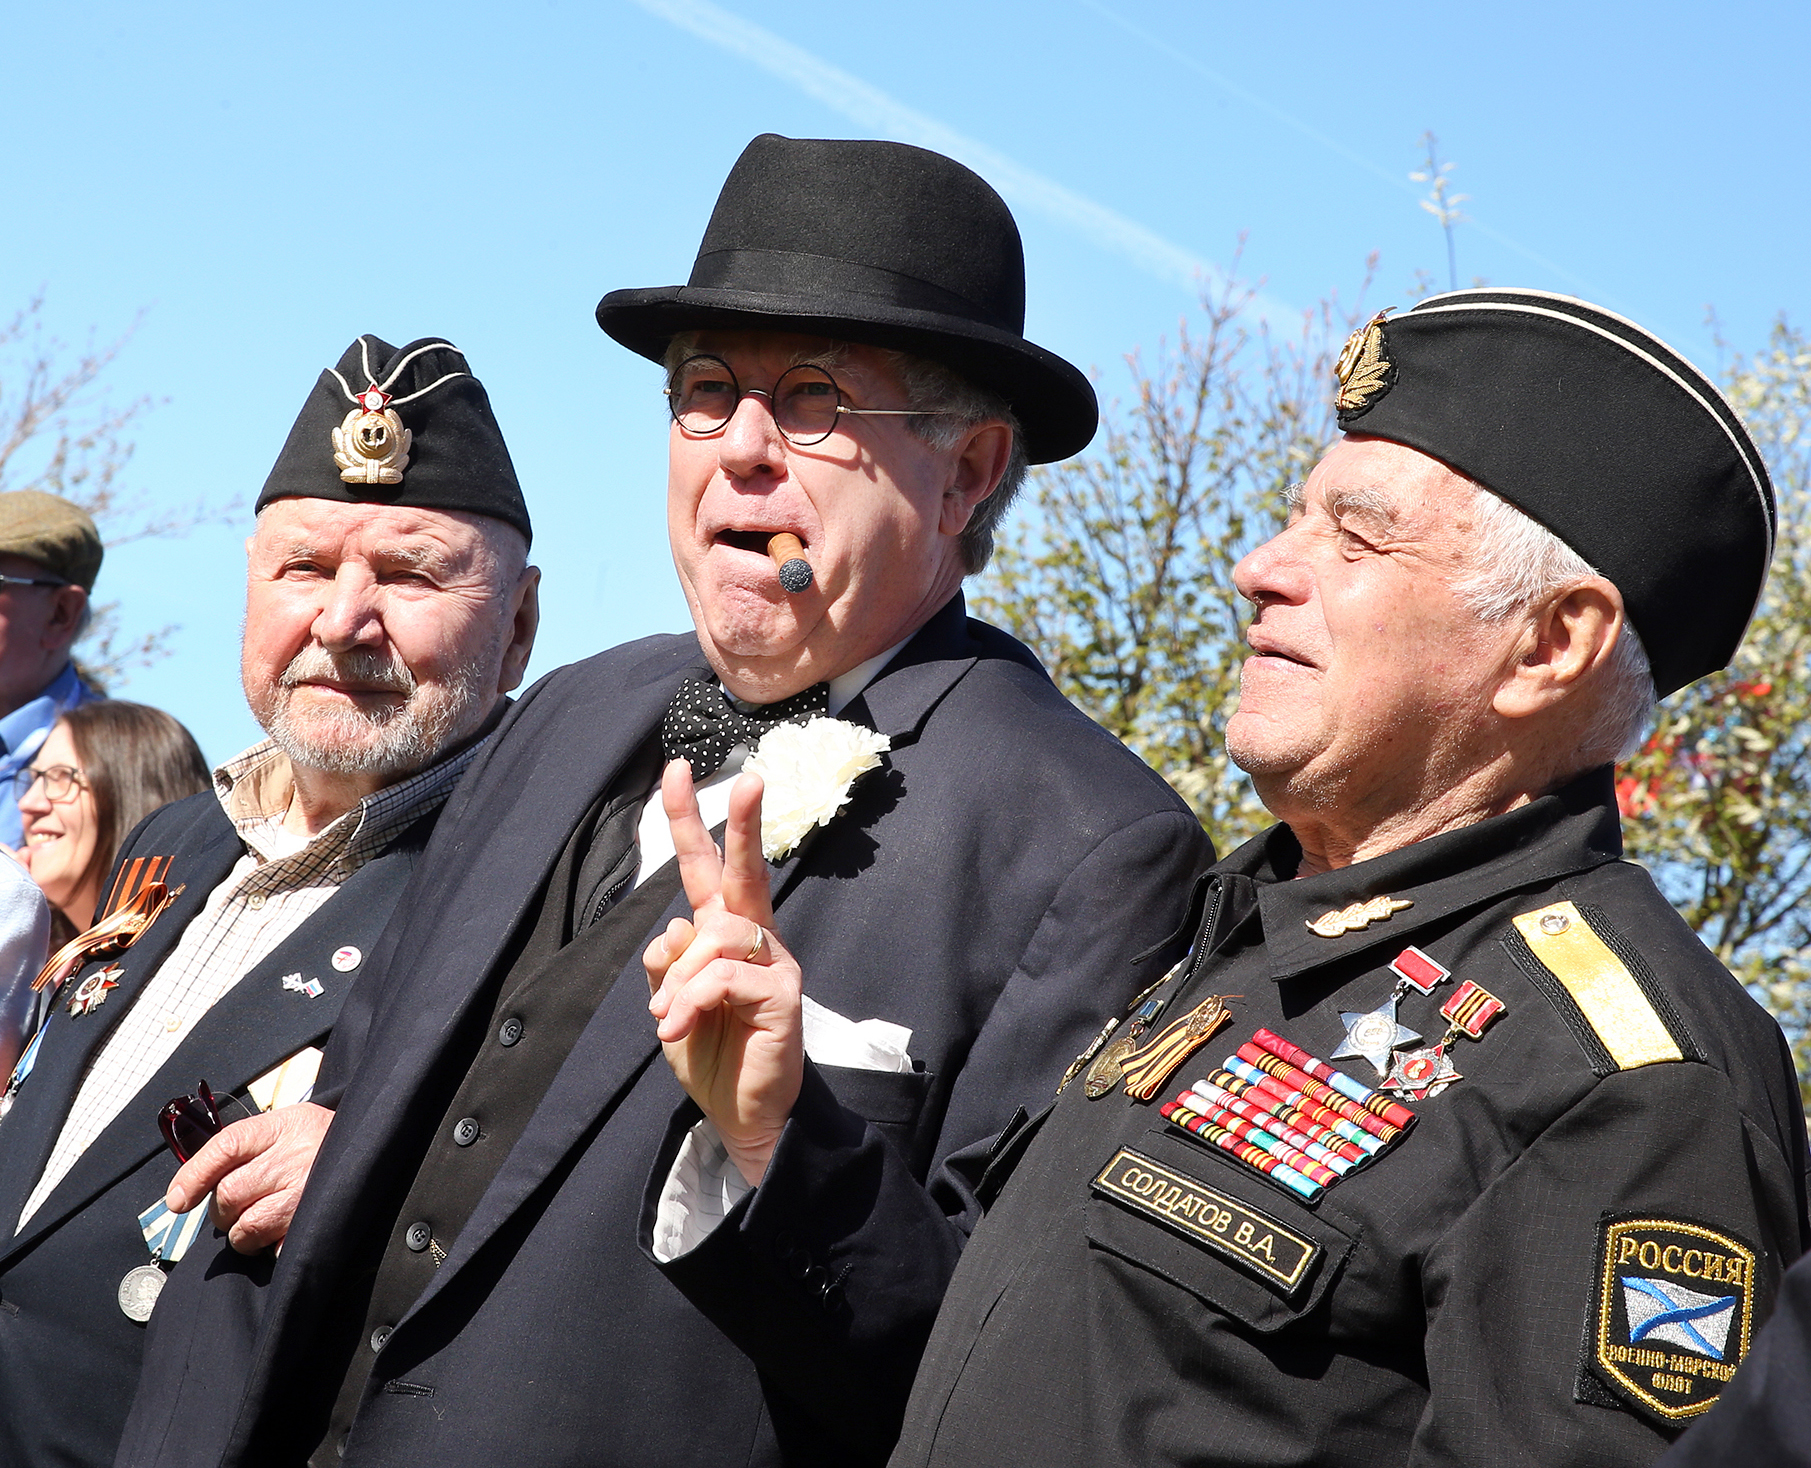 'Winston Churchill' (Richard Gumm) and some of the Russian veterans including Alexander Lochagin.